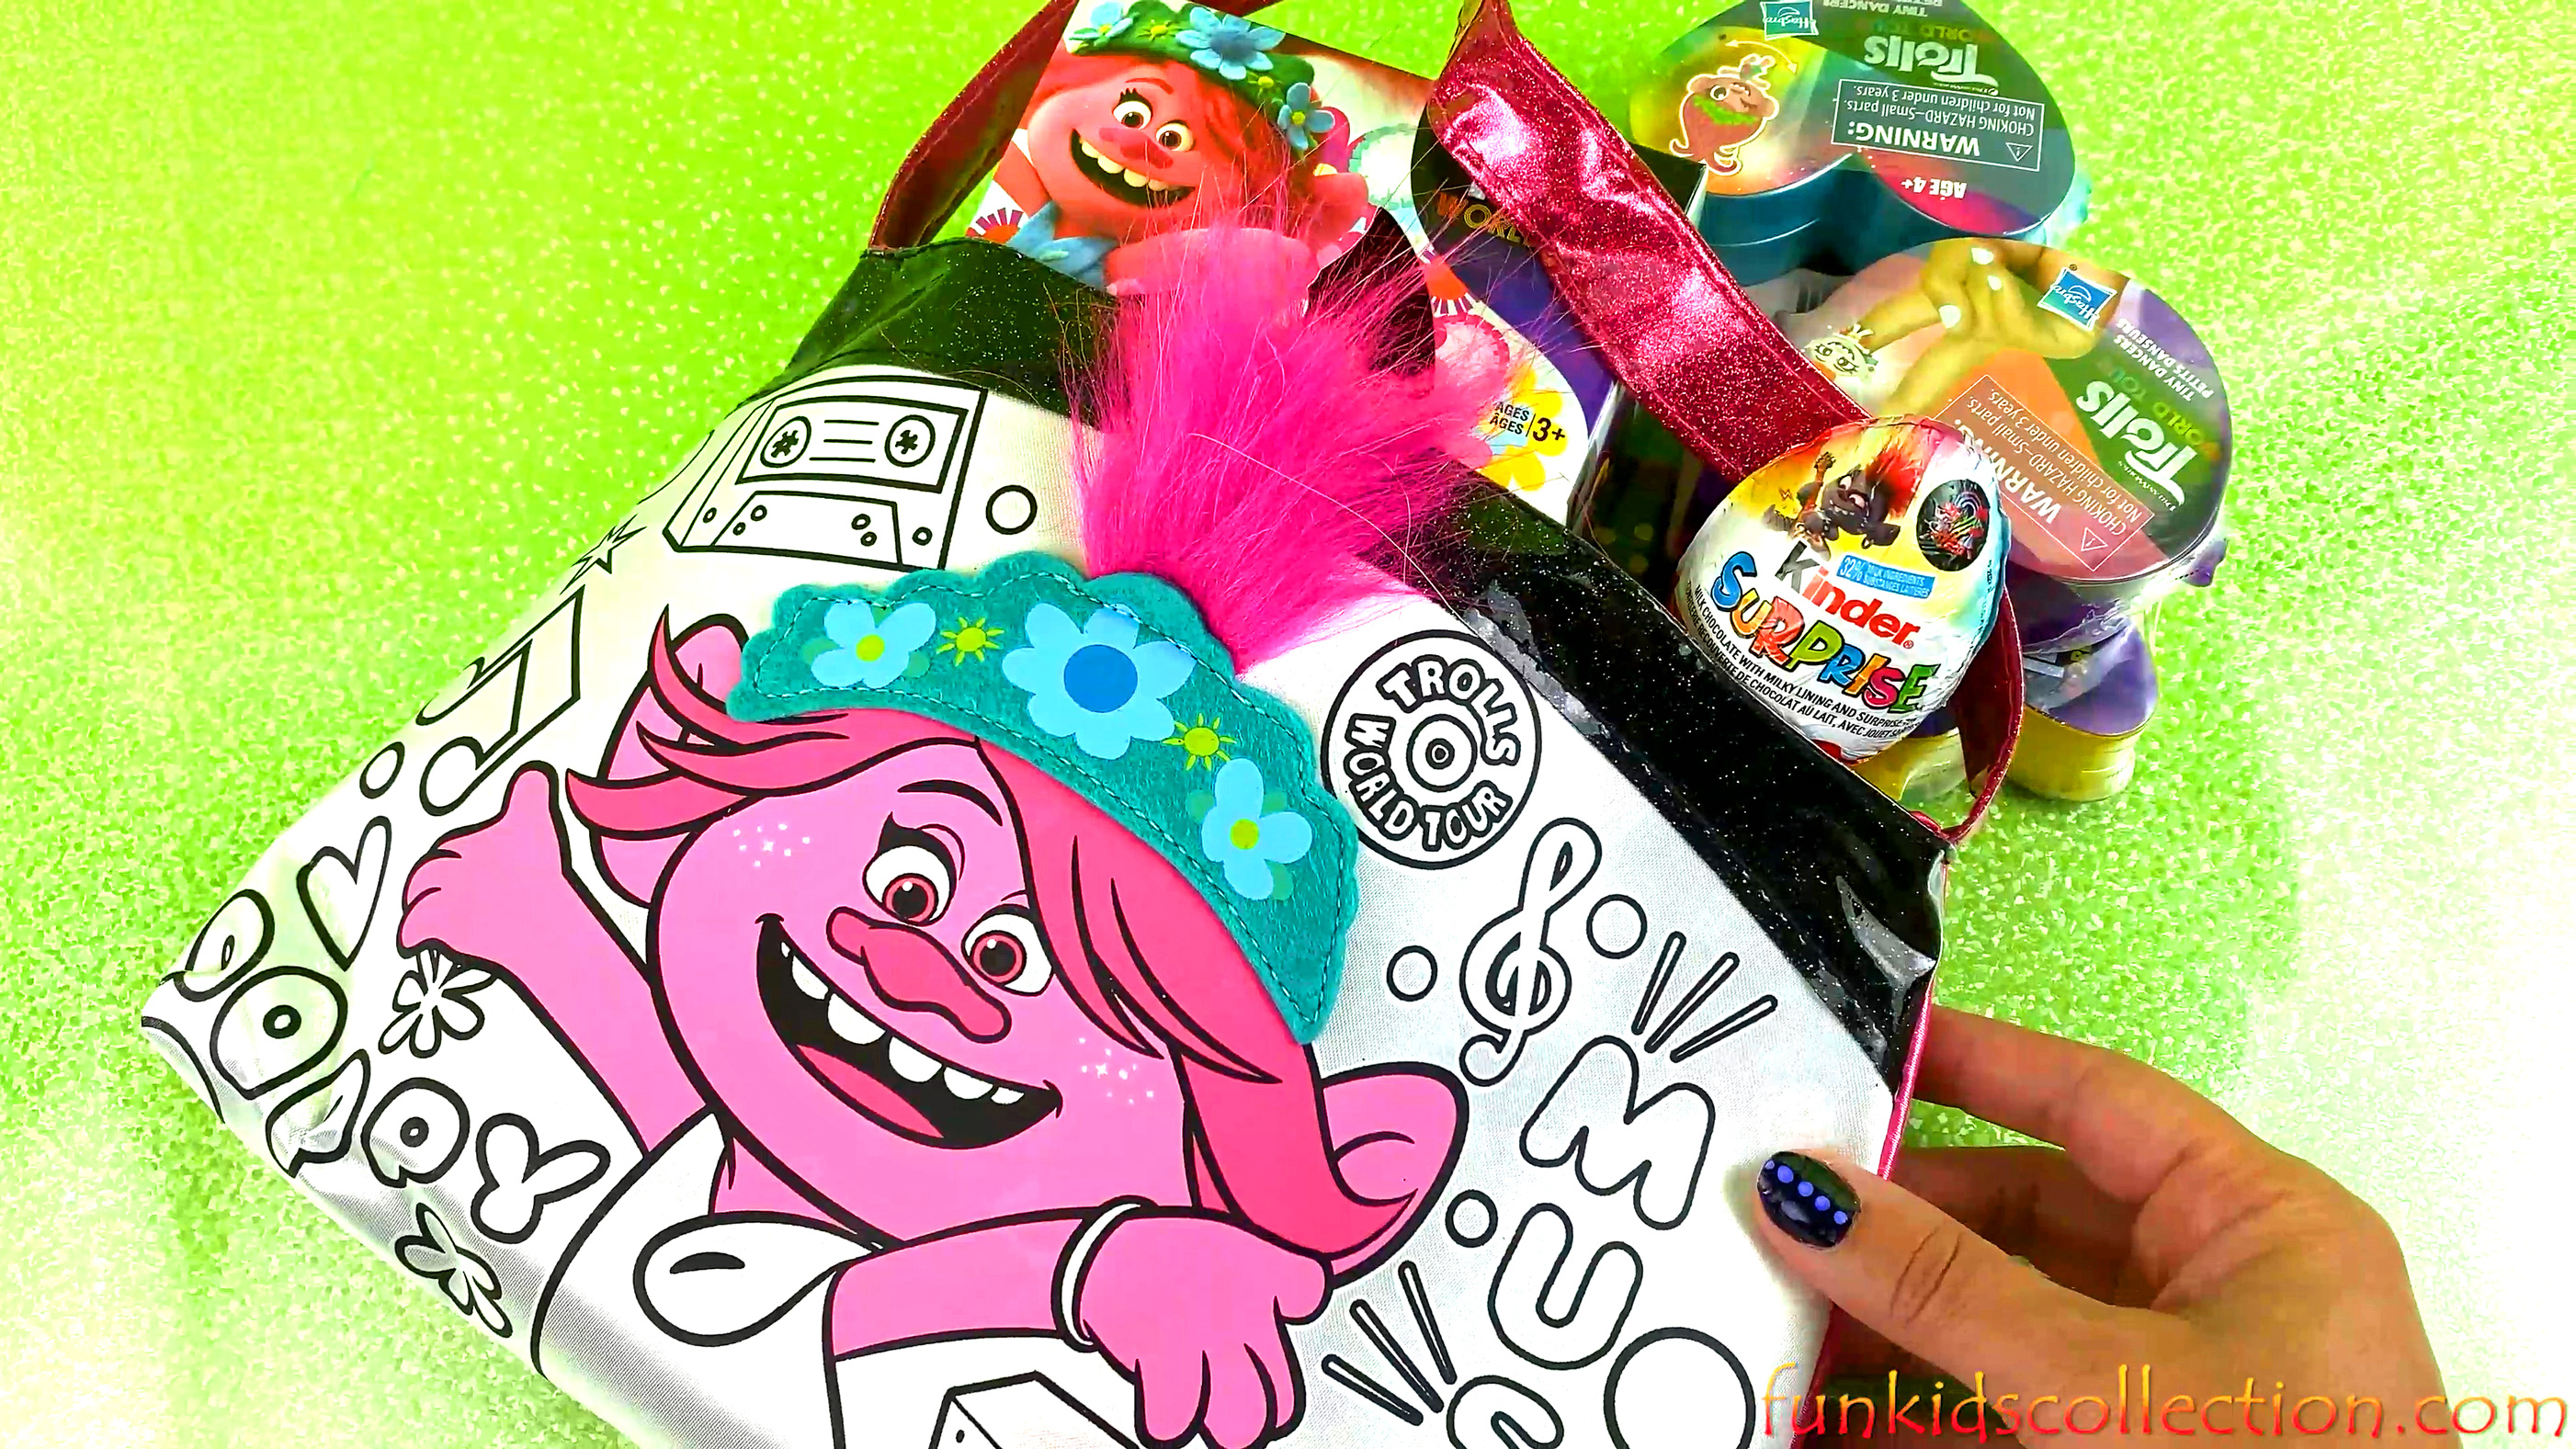 Trolls World Tour Bag w/ Trolls Surprises Trolls Kinder Egg Unboxing Trolls Tiny Dancers Blind Boxes